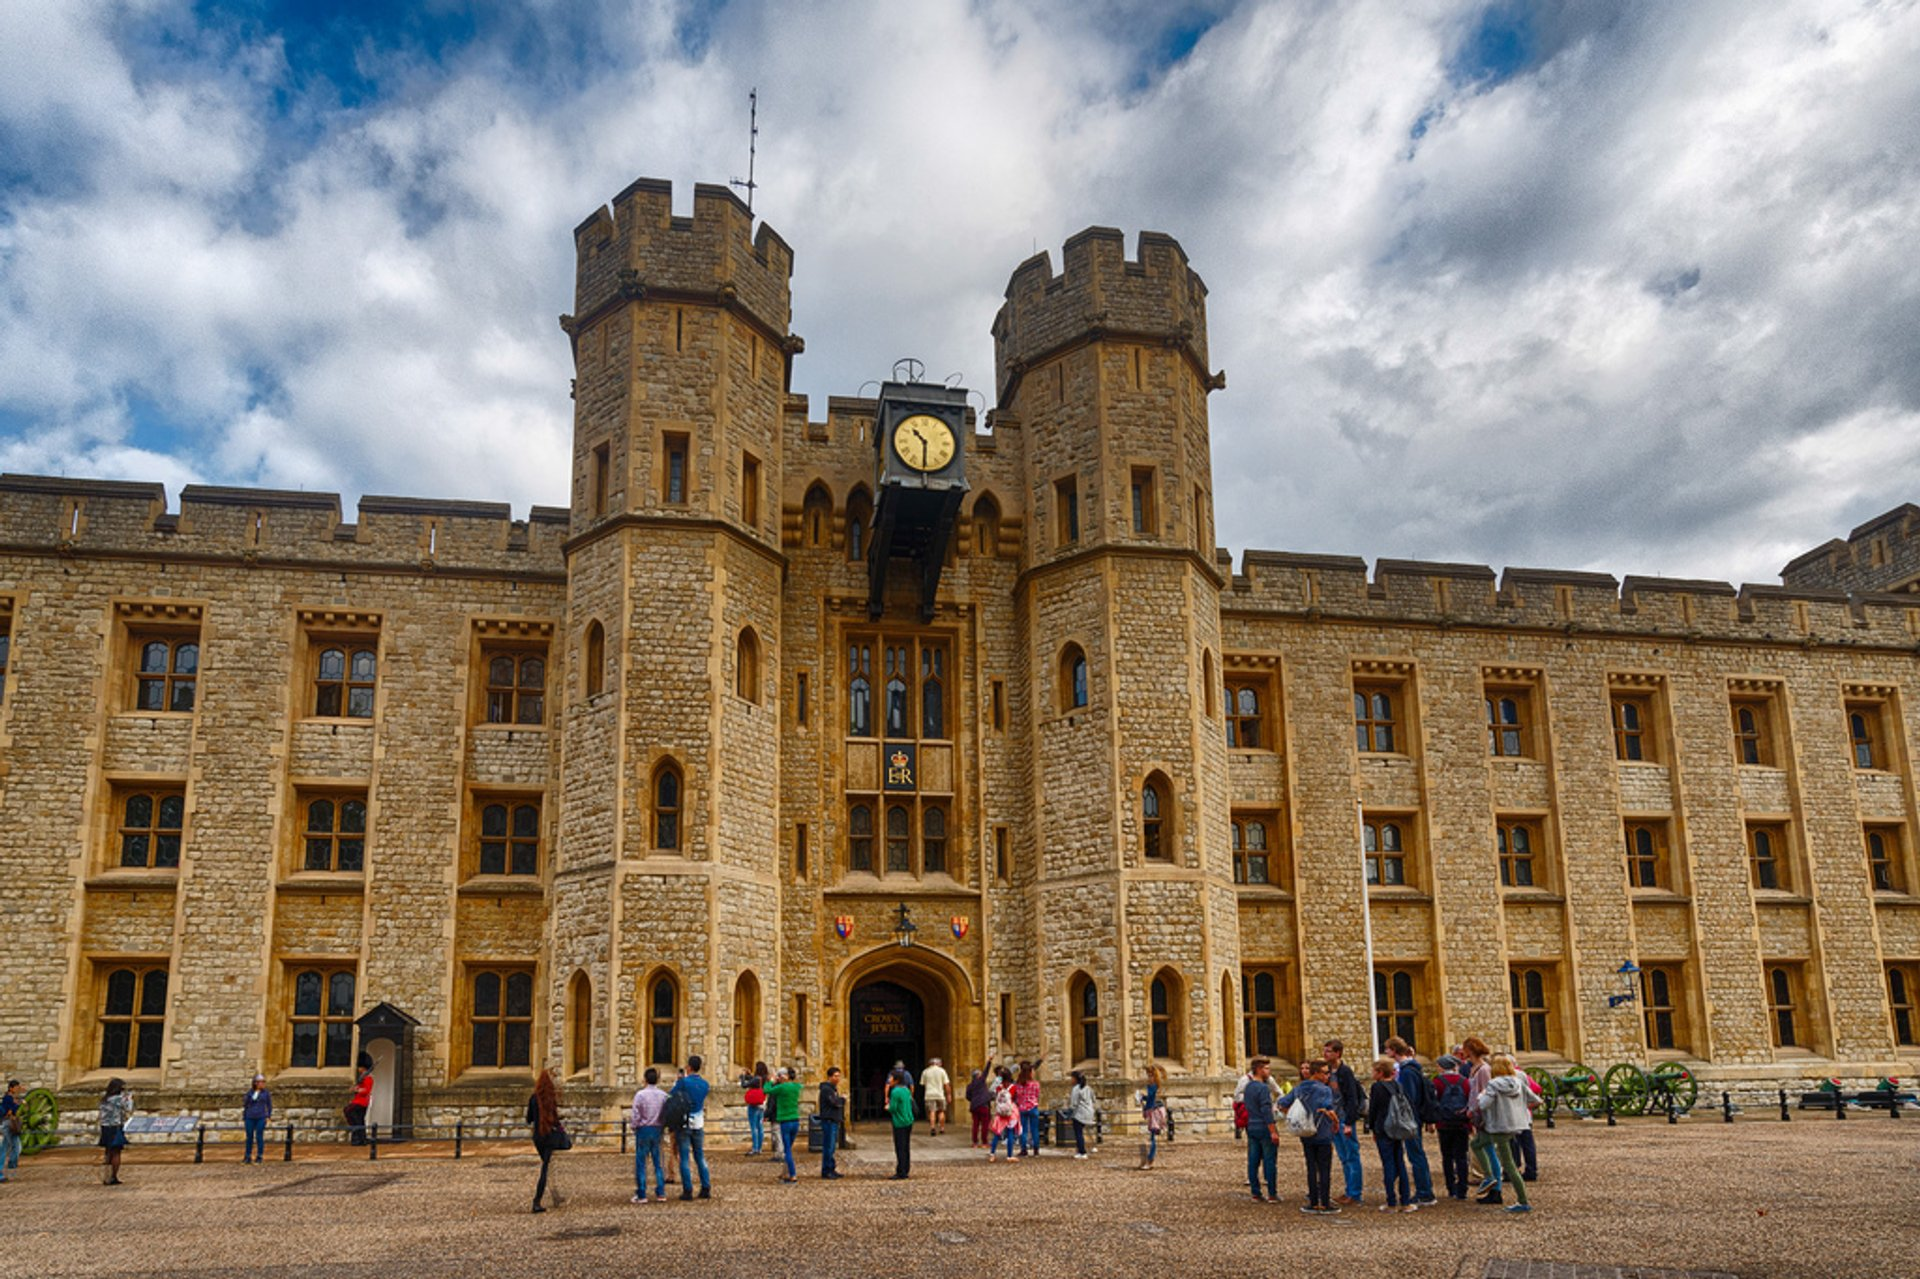 The Crown Jewels, Tower of London 2020